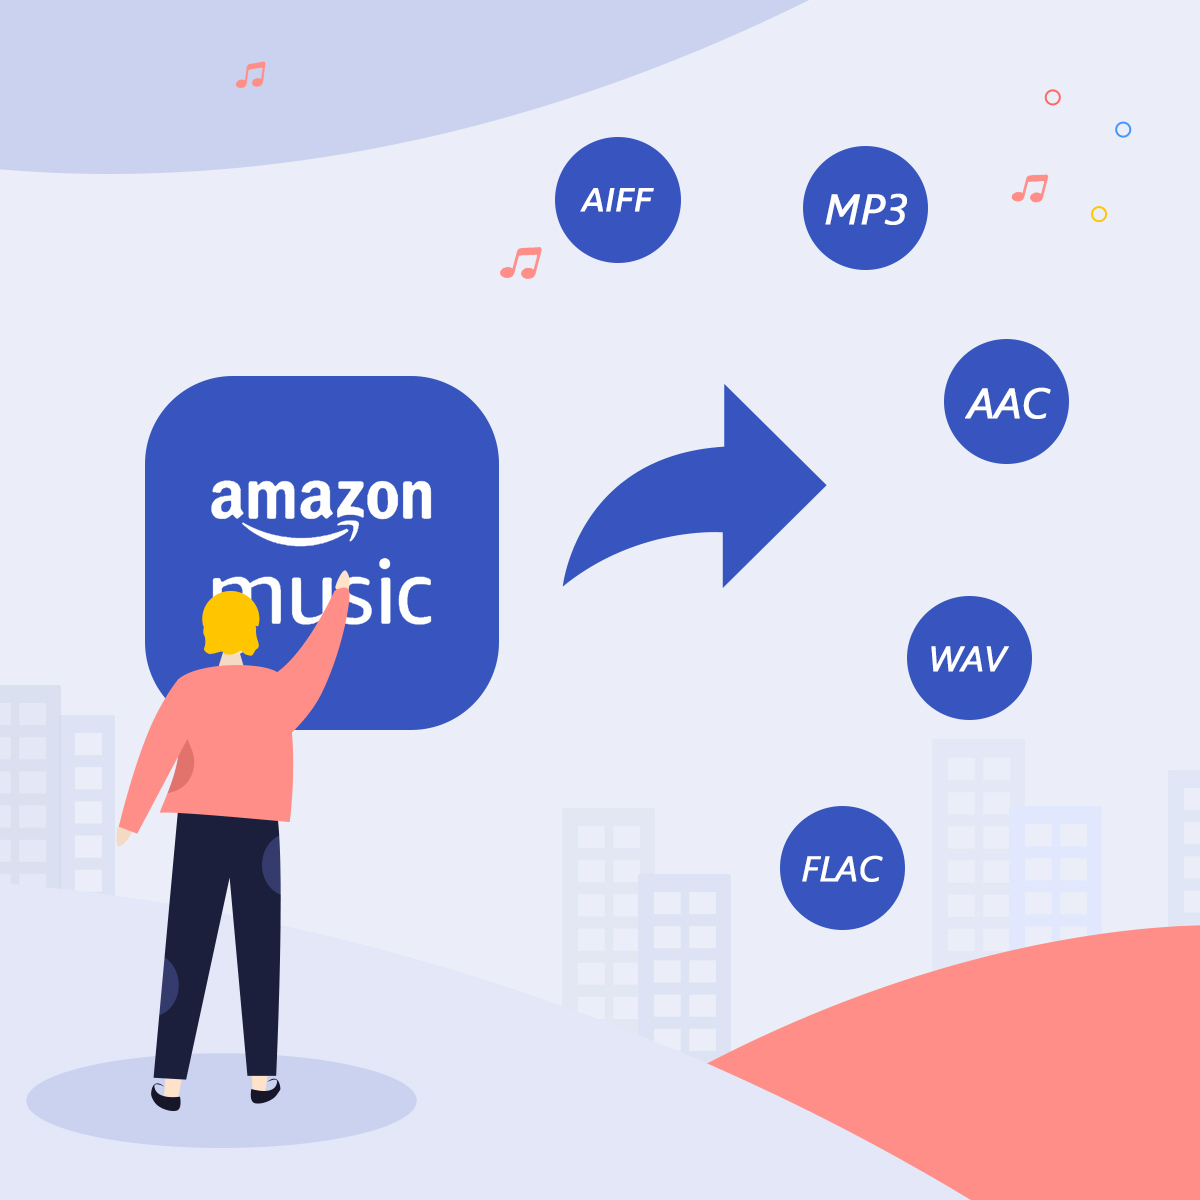 Amazon Music als MP3/AAC/WAV/FLAC speichern